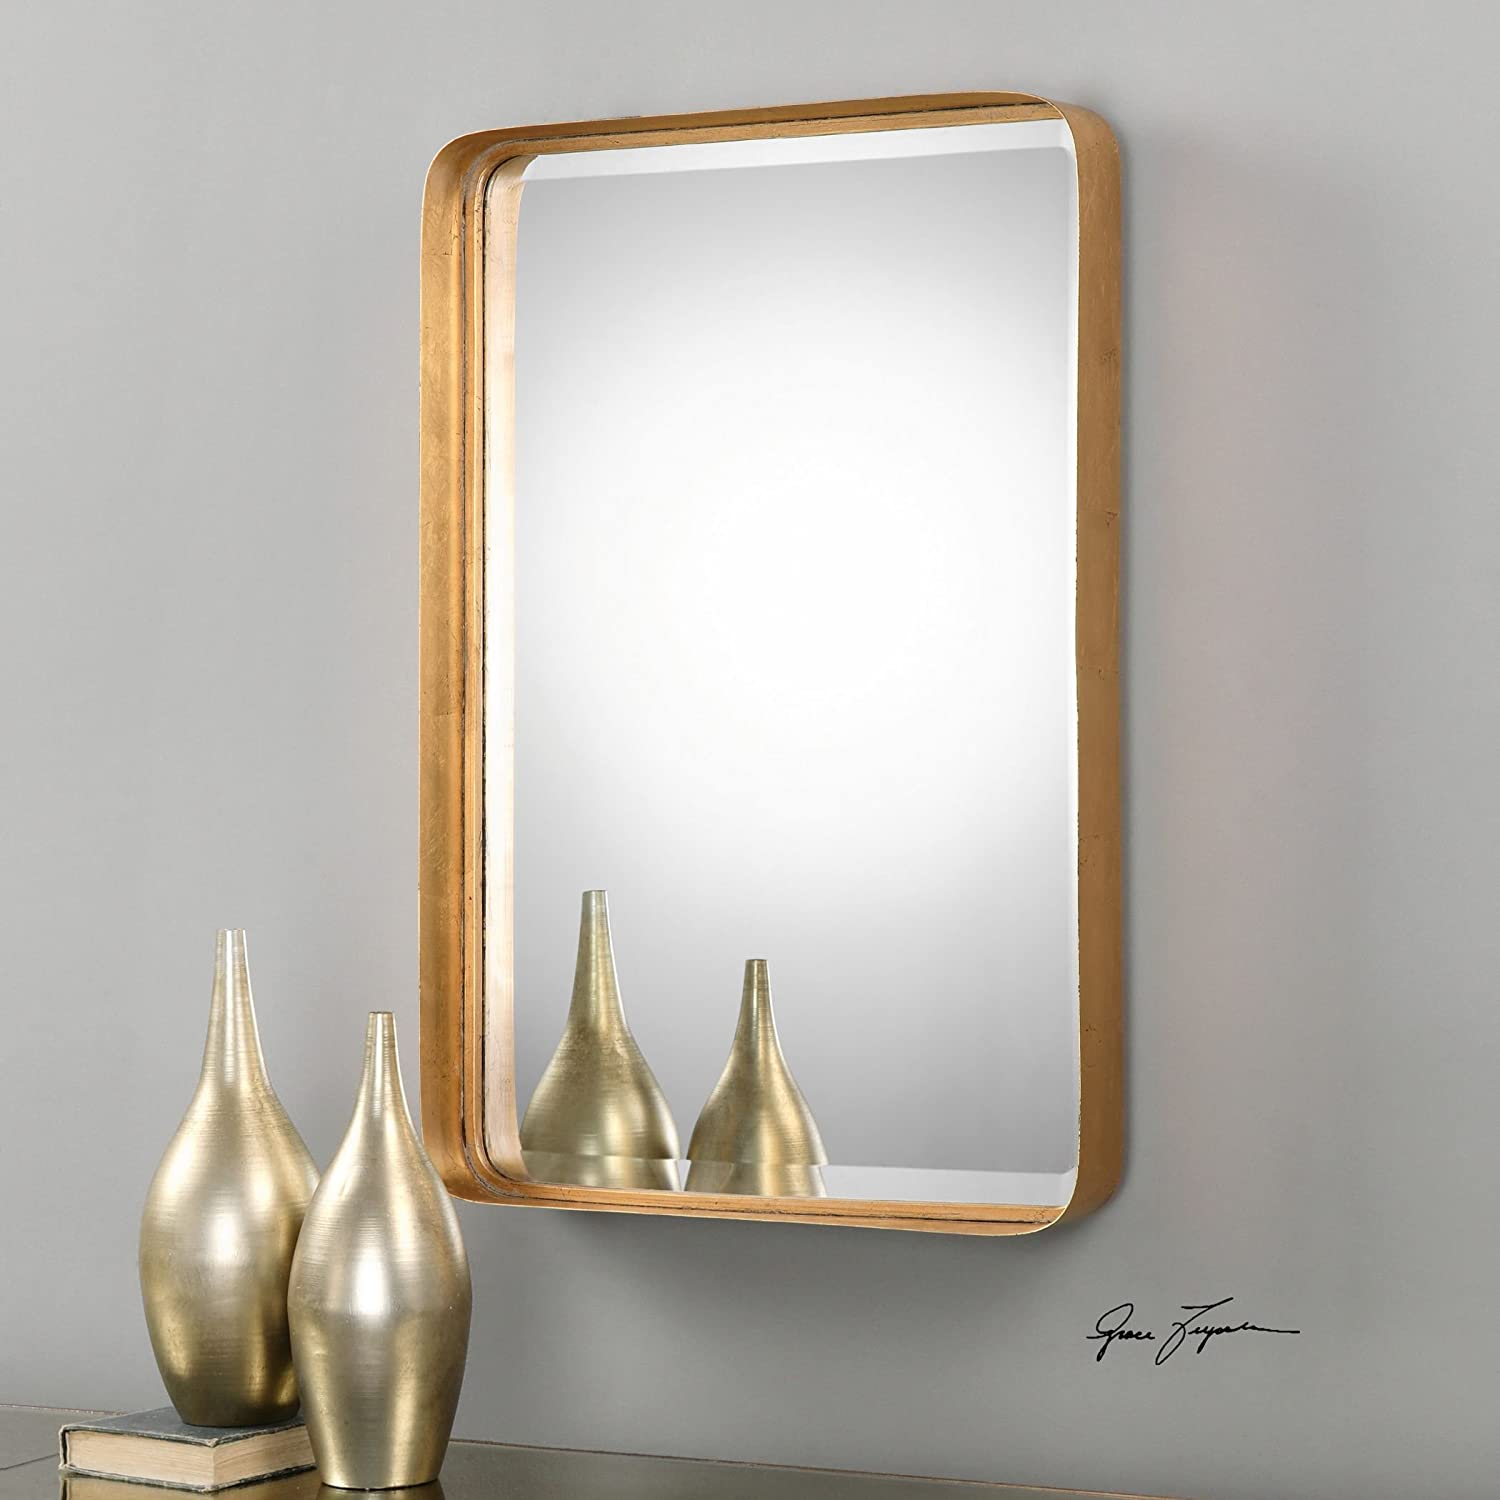 Amazon Com My Swanky Home Classic Contemporary Gold Metal Wall Mirror Vanity Rectangle Deep Frame Home Kitchen